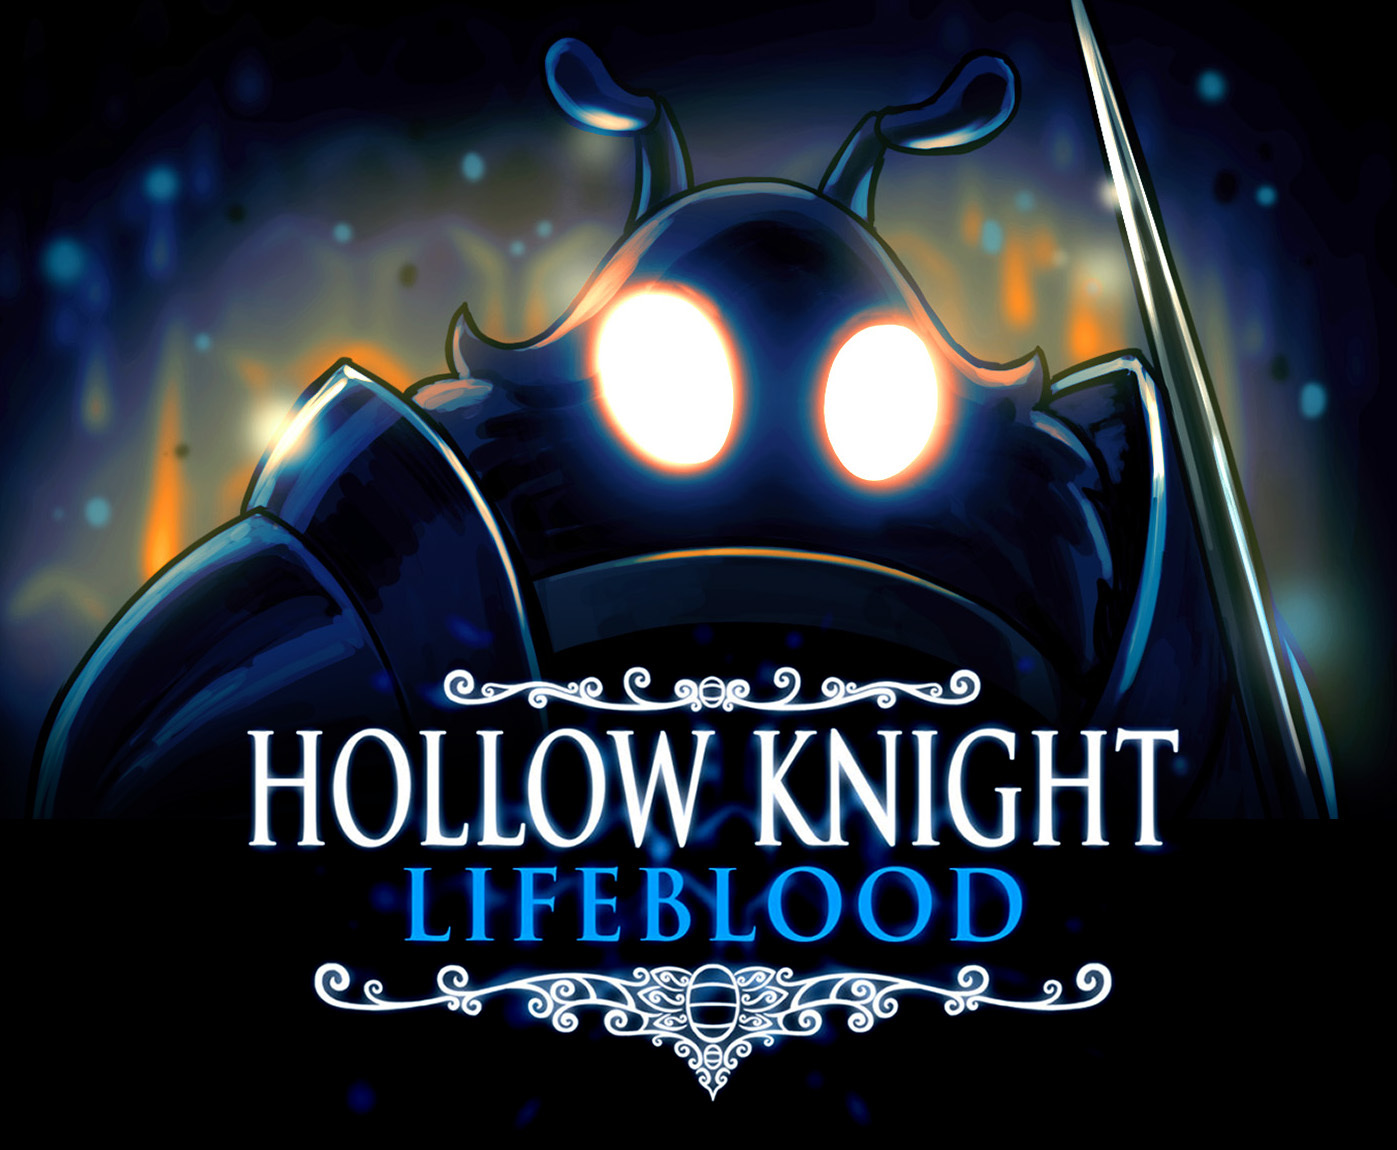 Hollow Knight: Lifeblood has now launched for all Windows, Mac & Linux players!